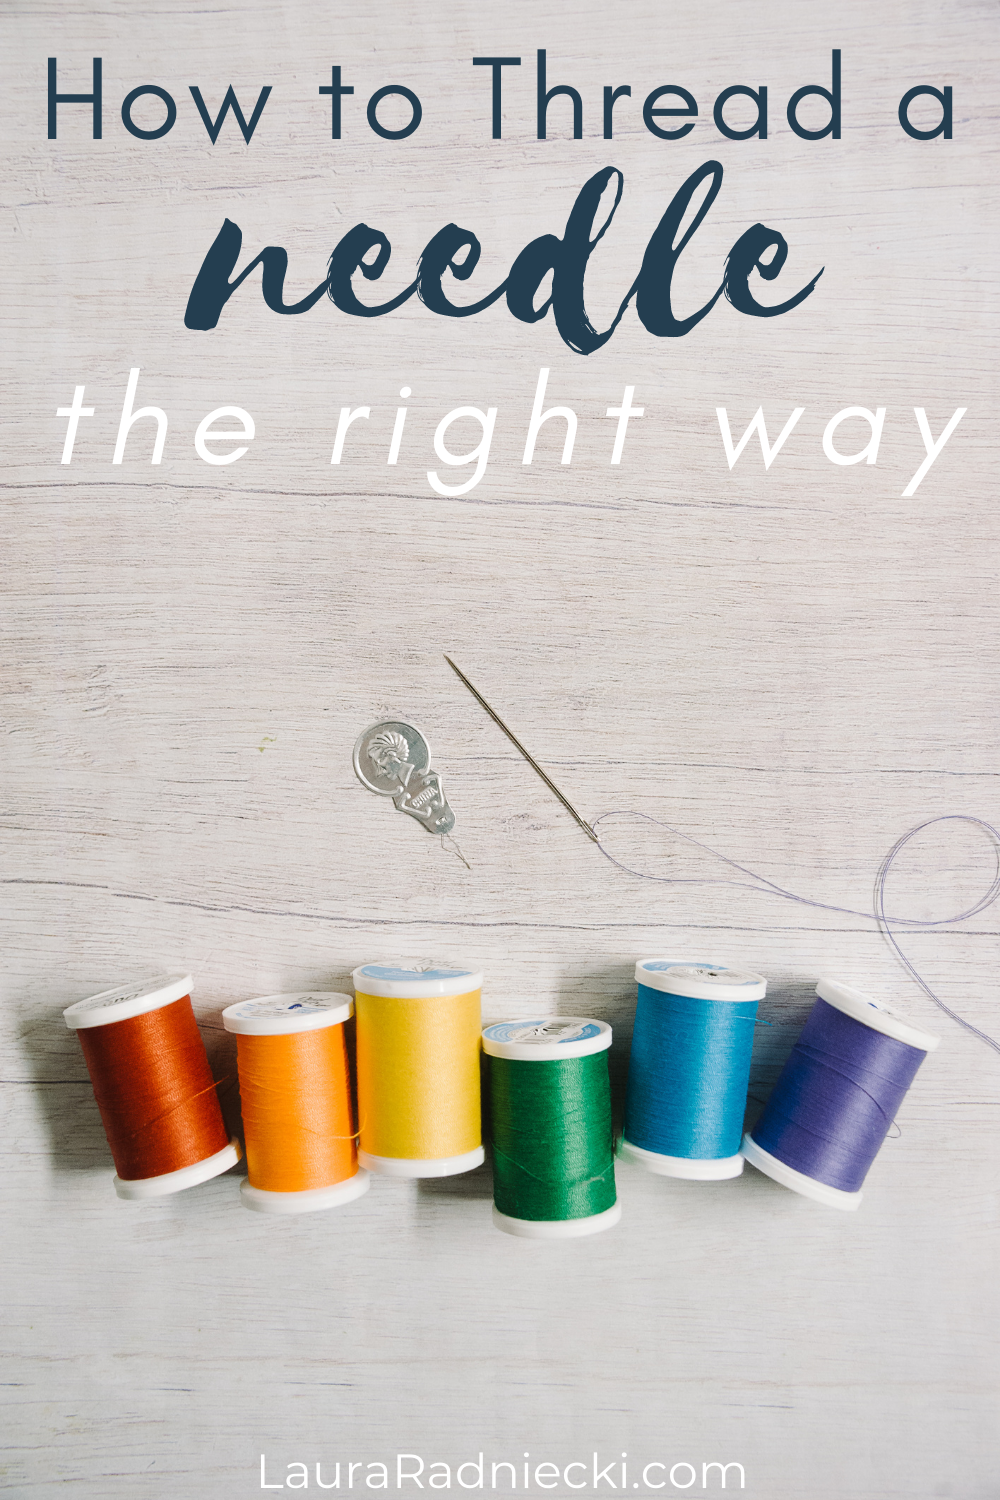 How to Thread a Needle the Right Way